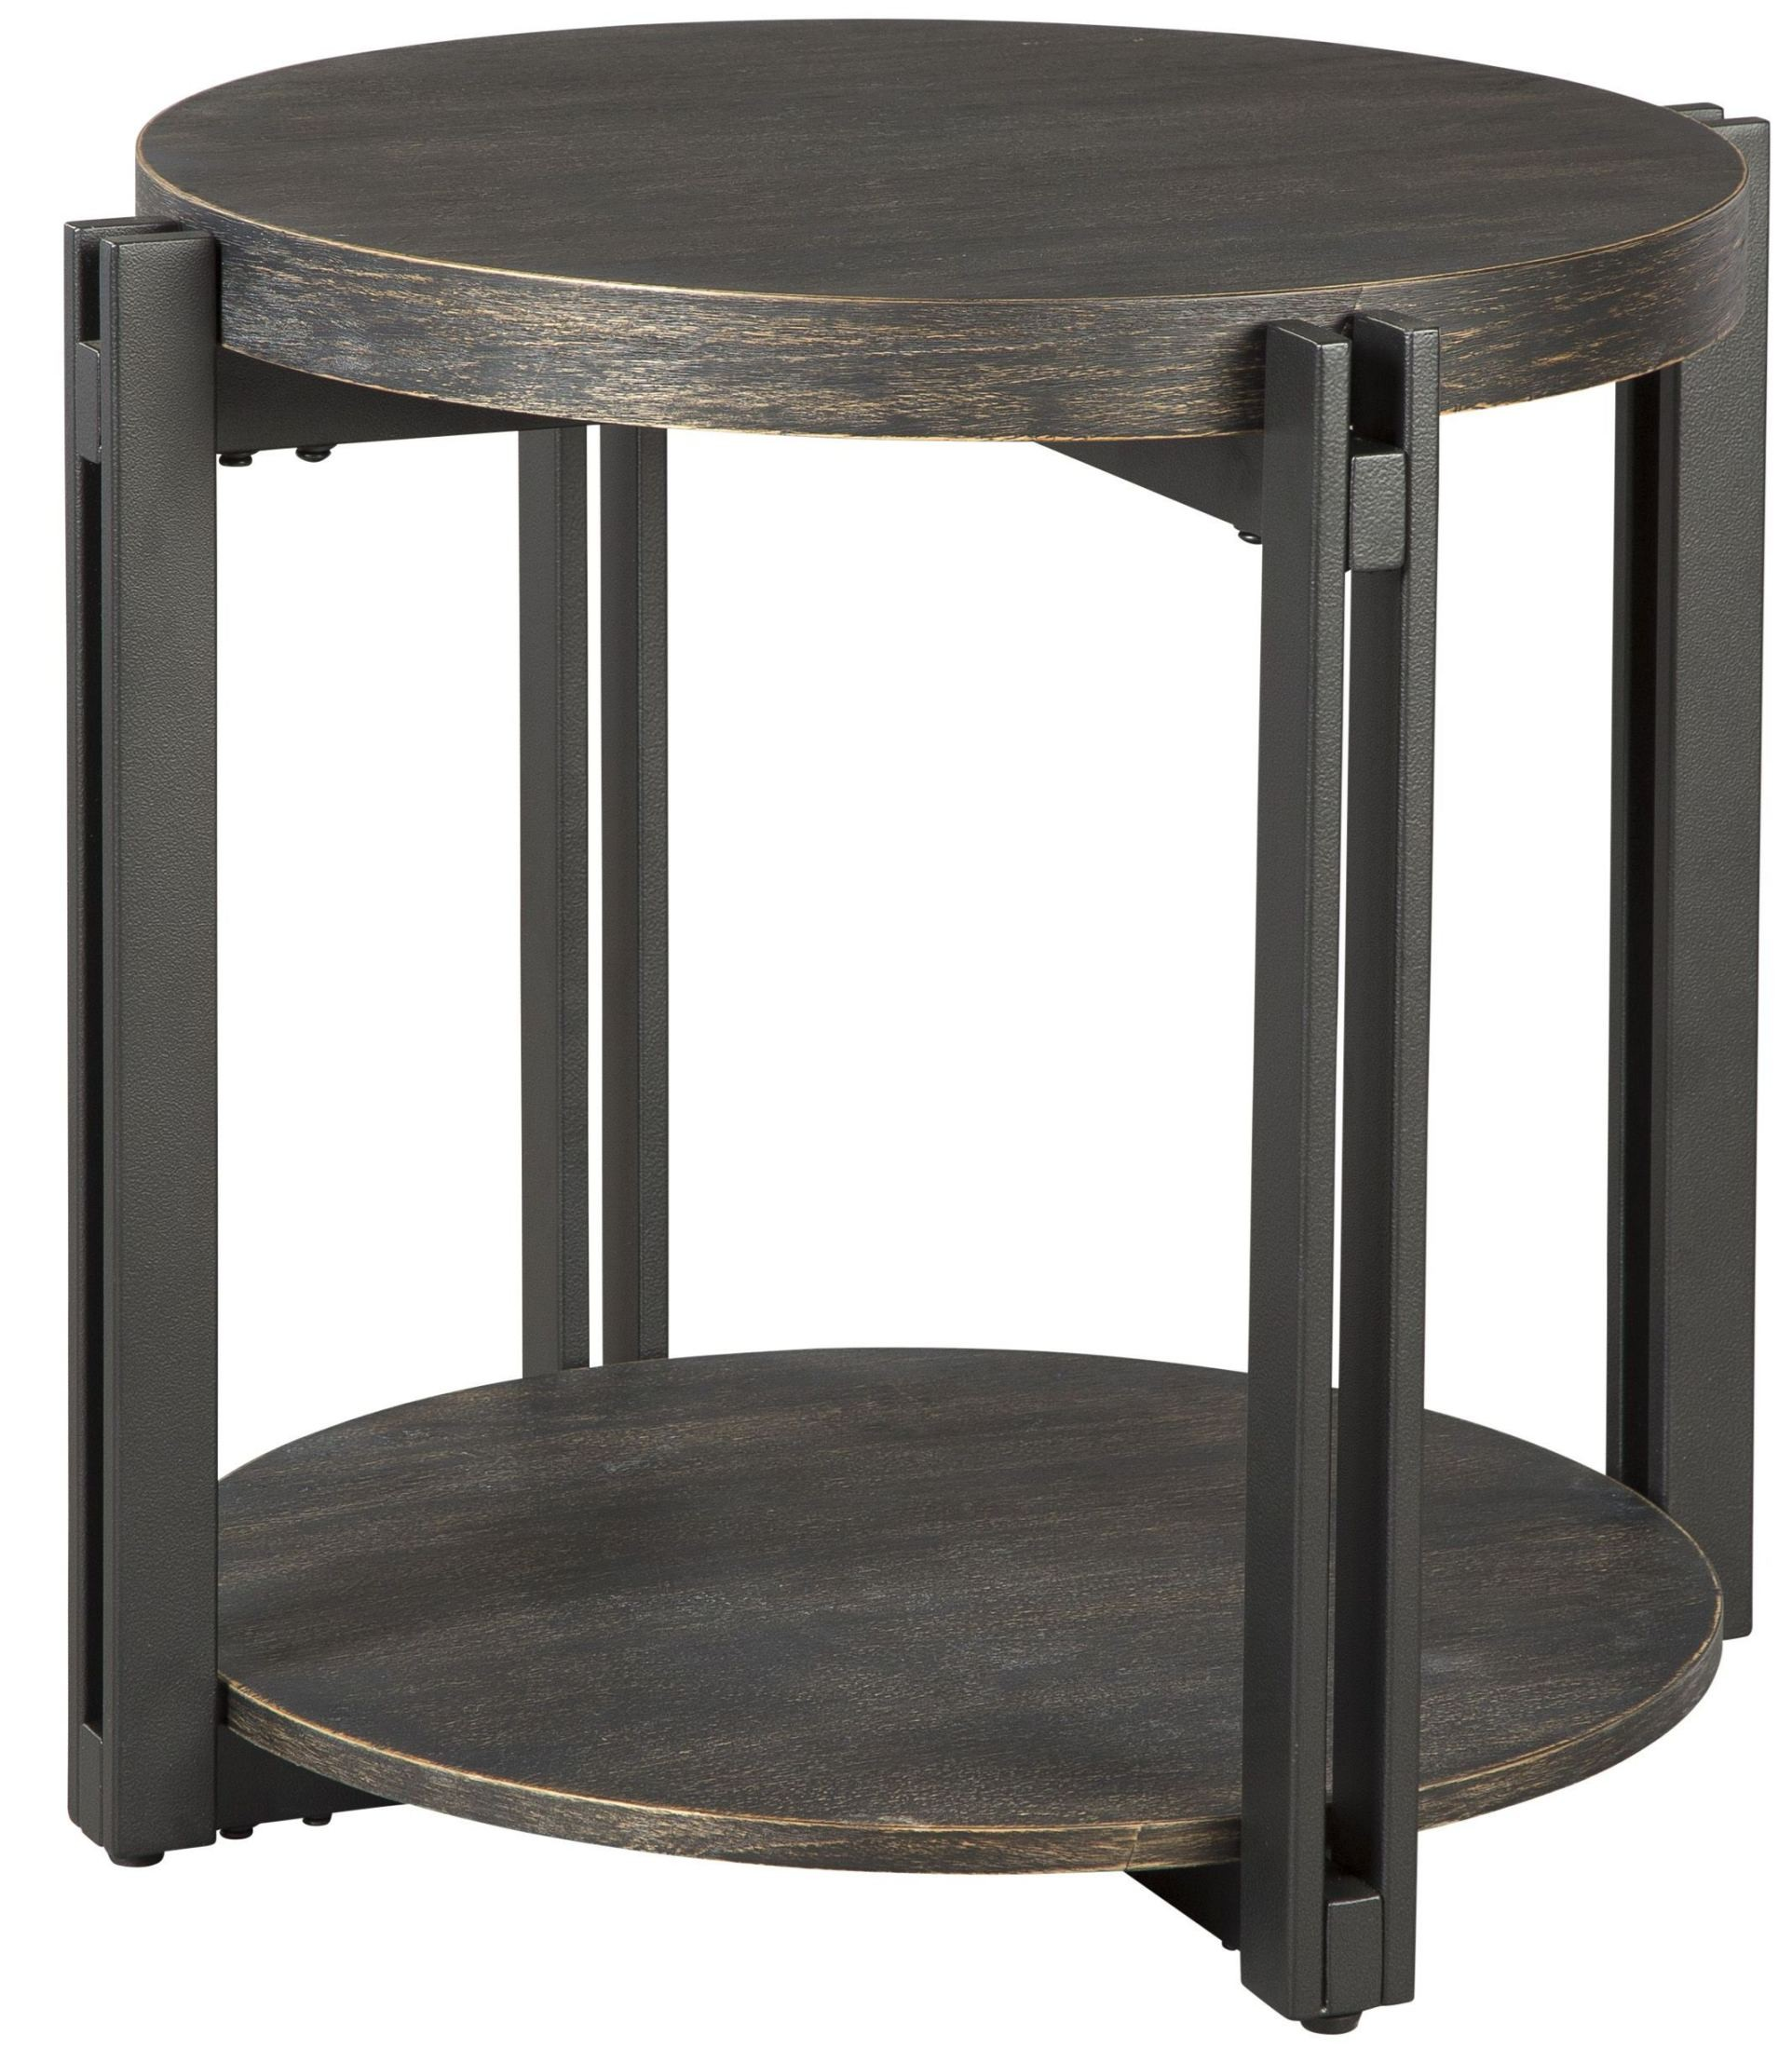 Circular End Tables Winnieconi Black Round End Table T857 6 Ashley